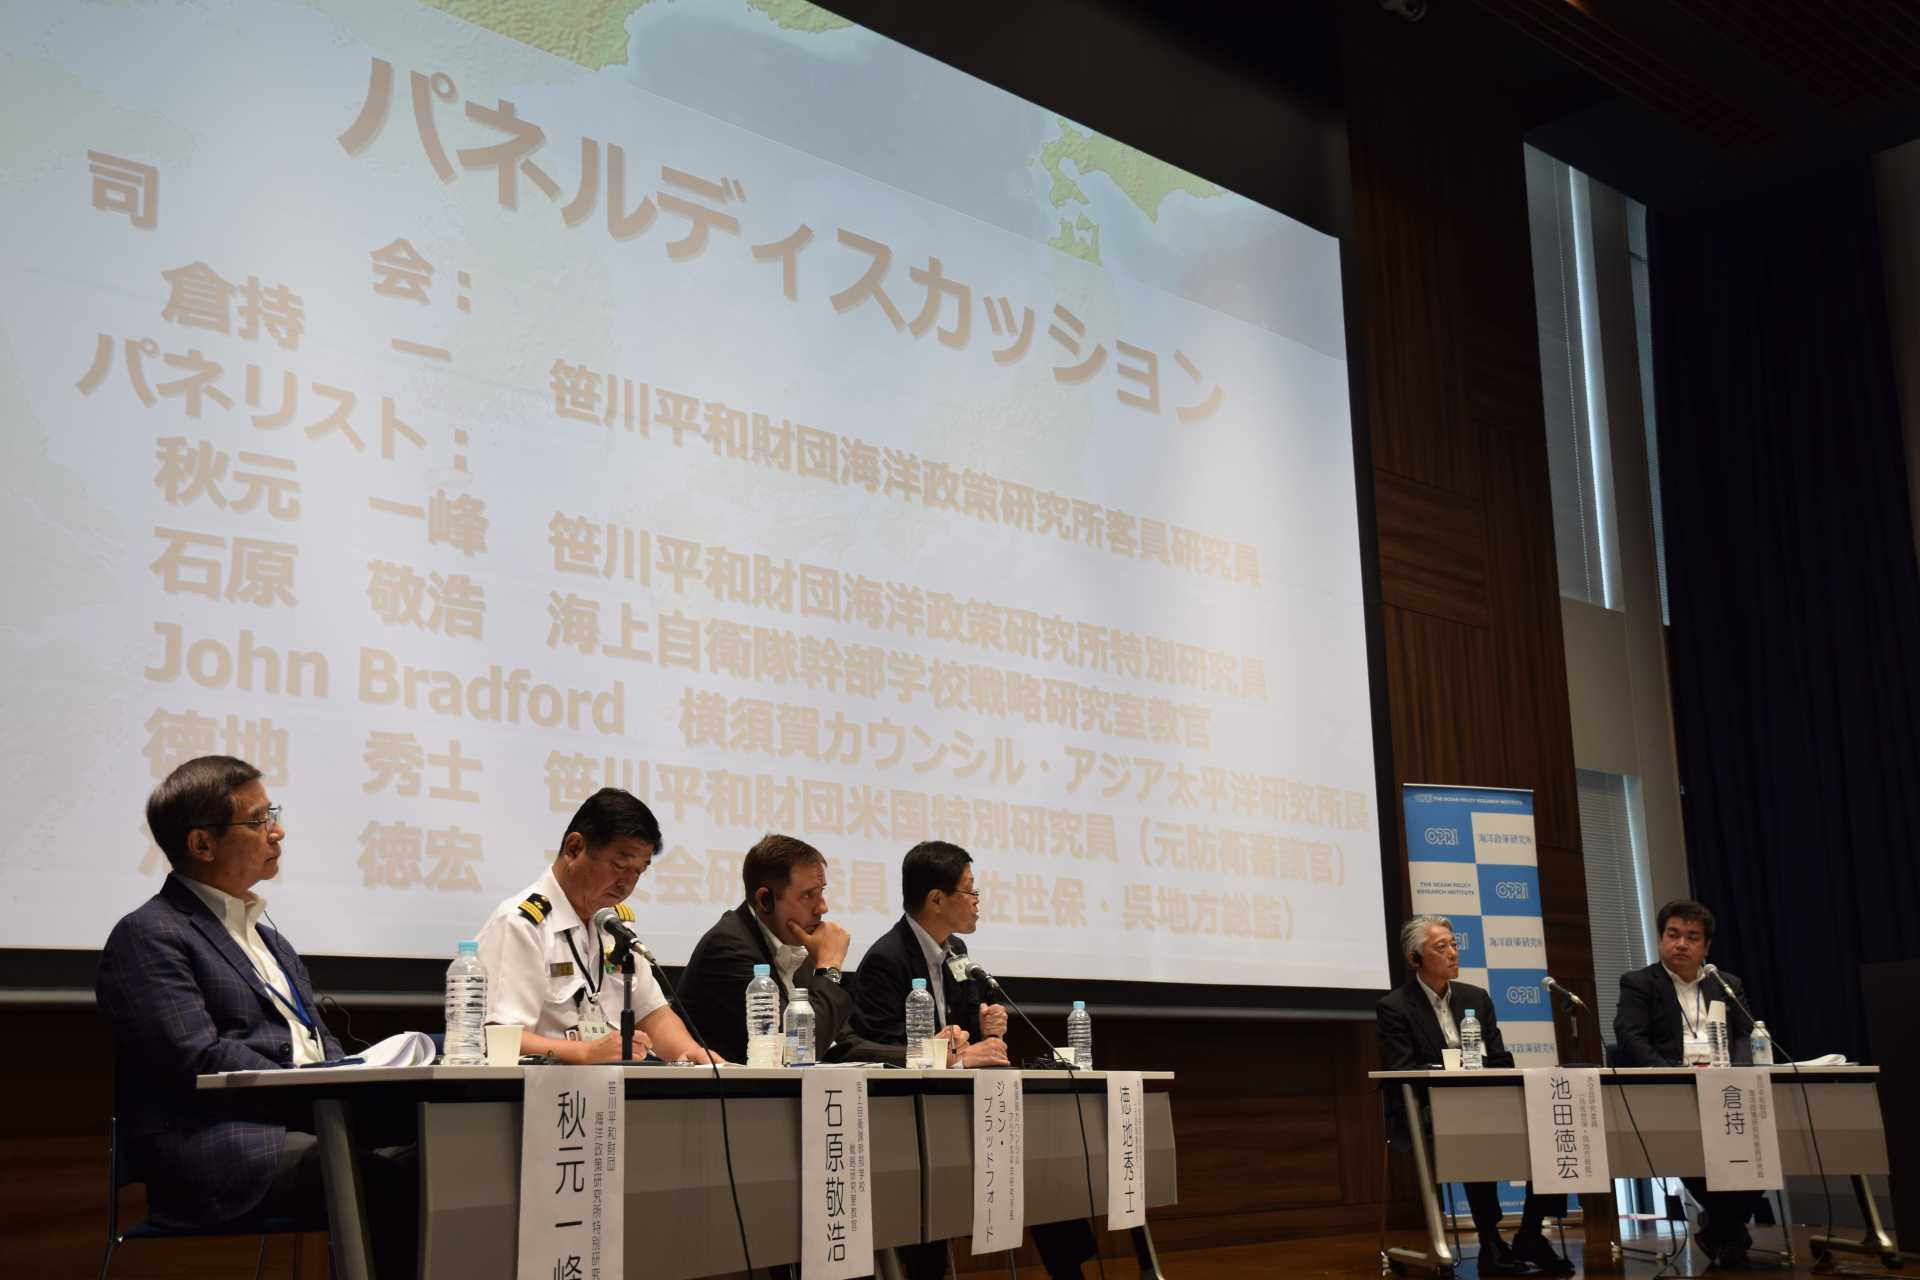 The Symposium saw meaningful discussions on topics including the utilization of the amphibious forces of the Japan Self-defense Forces (JSDF) and the Free and Open Indo-Pacific Strategy.